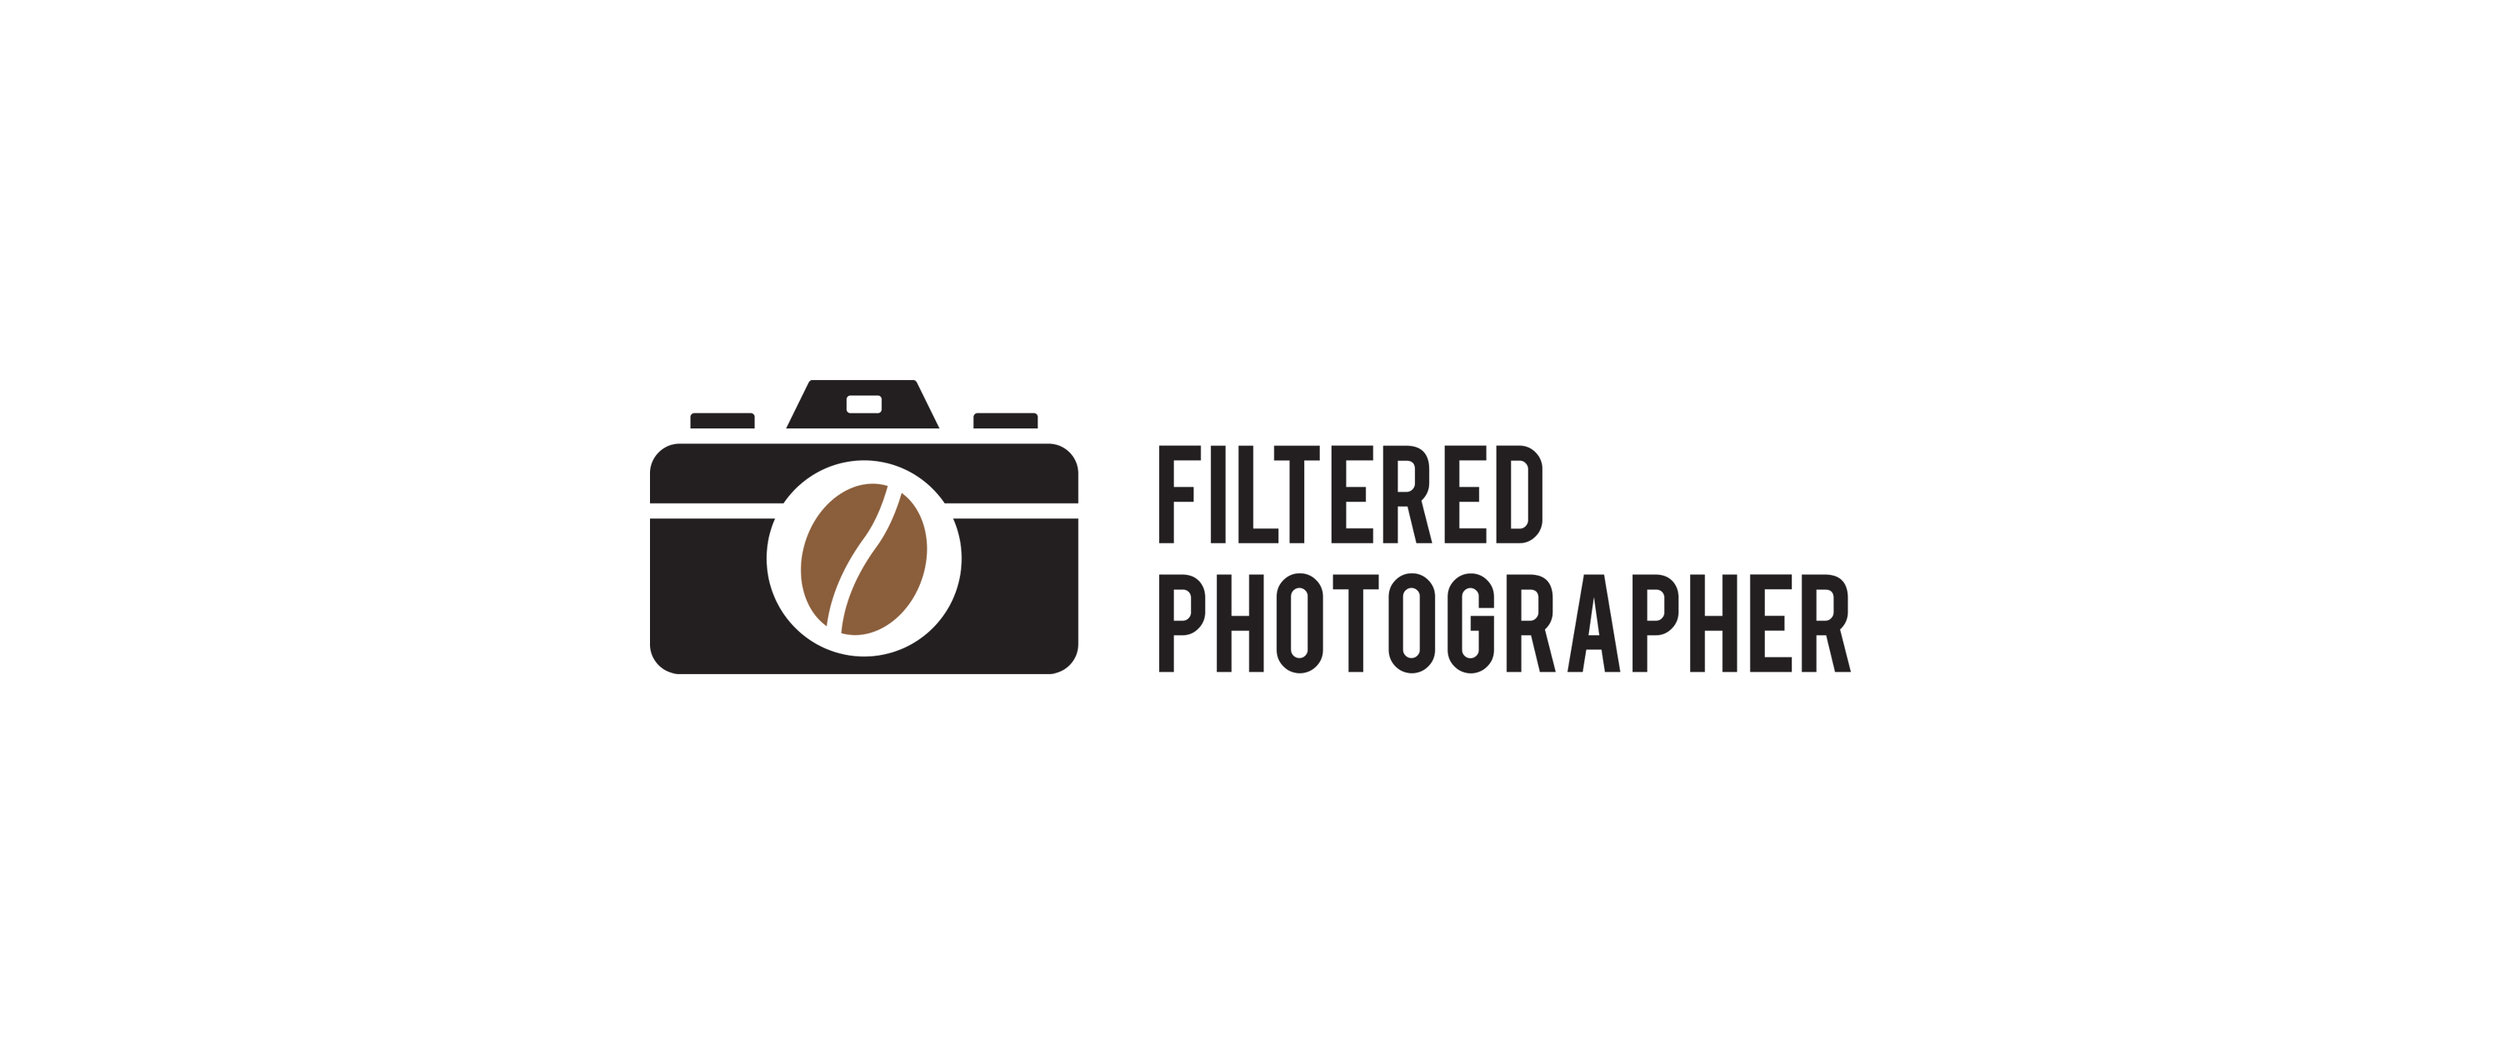 A blog specializing in coffee and photography